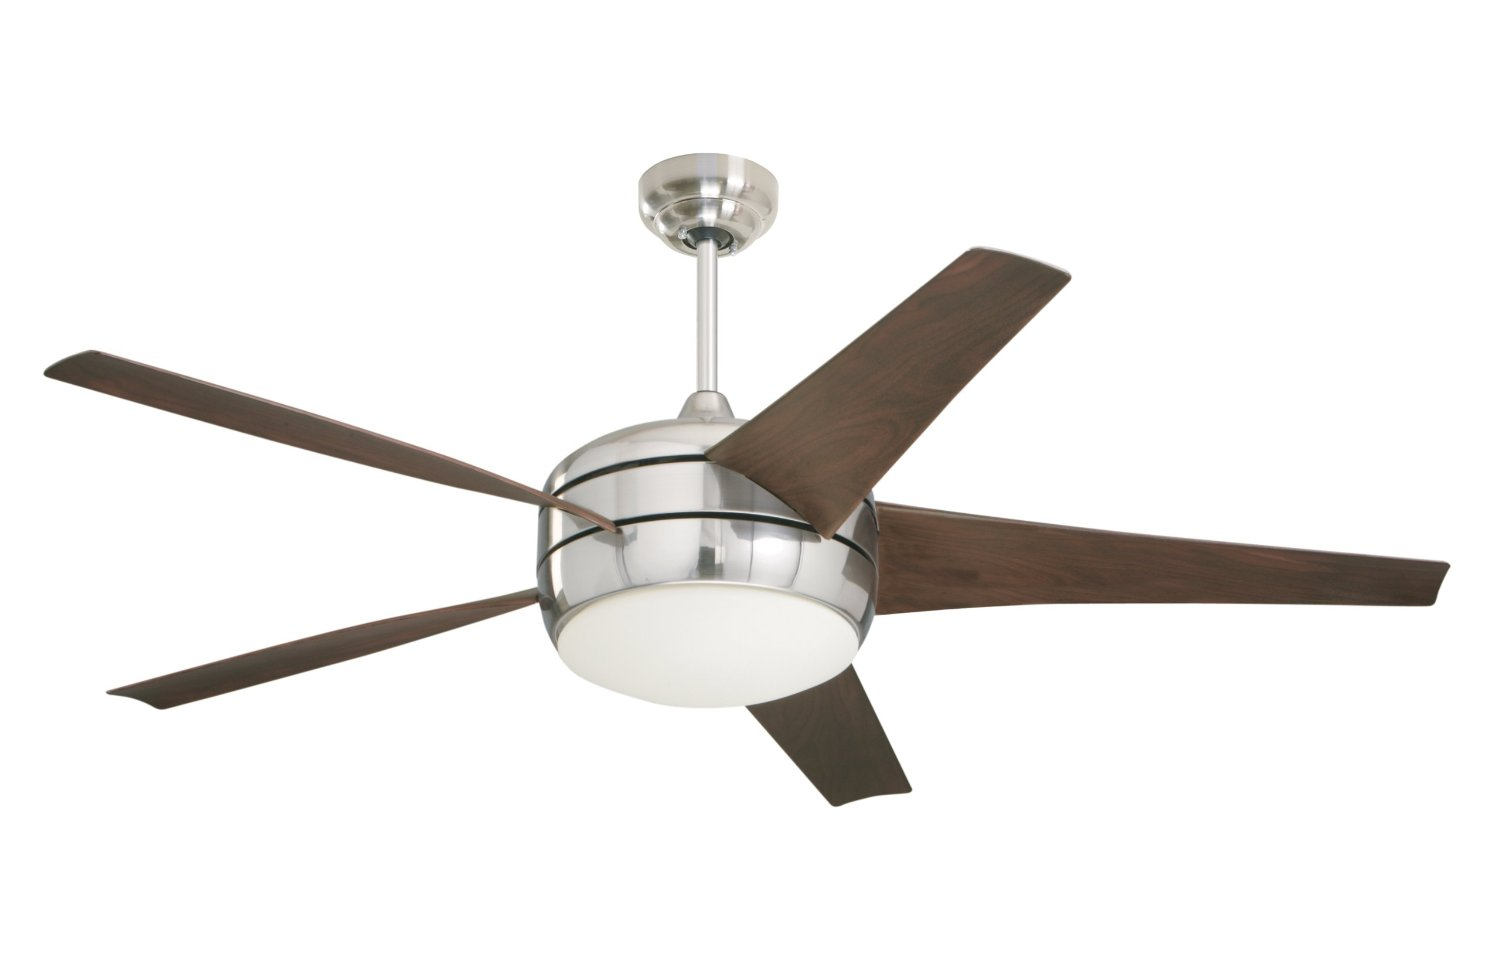 ceiling fan small photo - 6